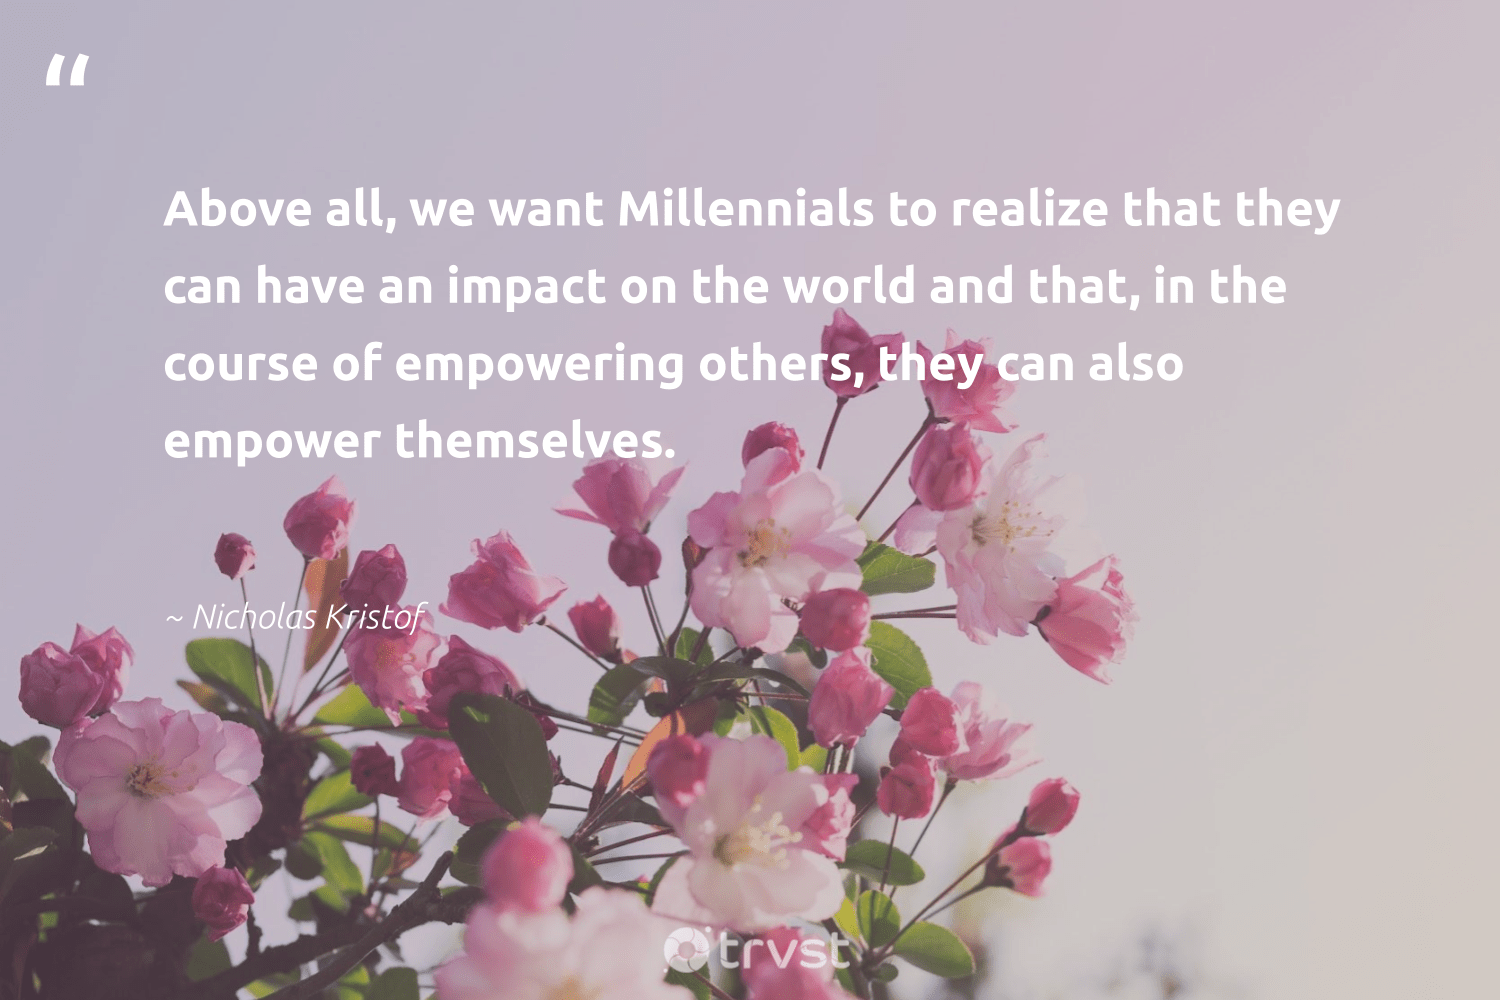 """""""Above all, we want Millennials to realize that they can have an impact on the world and that, in the course of empowering others, they can also empower themselves.""""  - Nicholas Kristof #trvst #quotes #impact #makeadifference #socialchange #betterplanet #ecoconscious #weareallone #planetearthfirst #ethicalbusiness #socialimpact #dogood"""